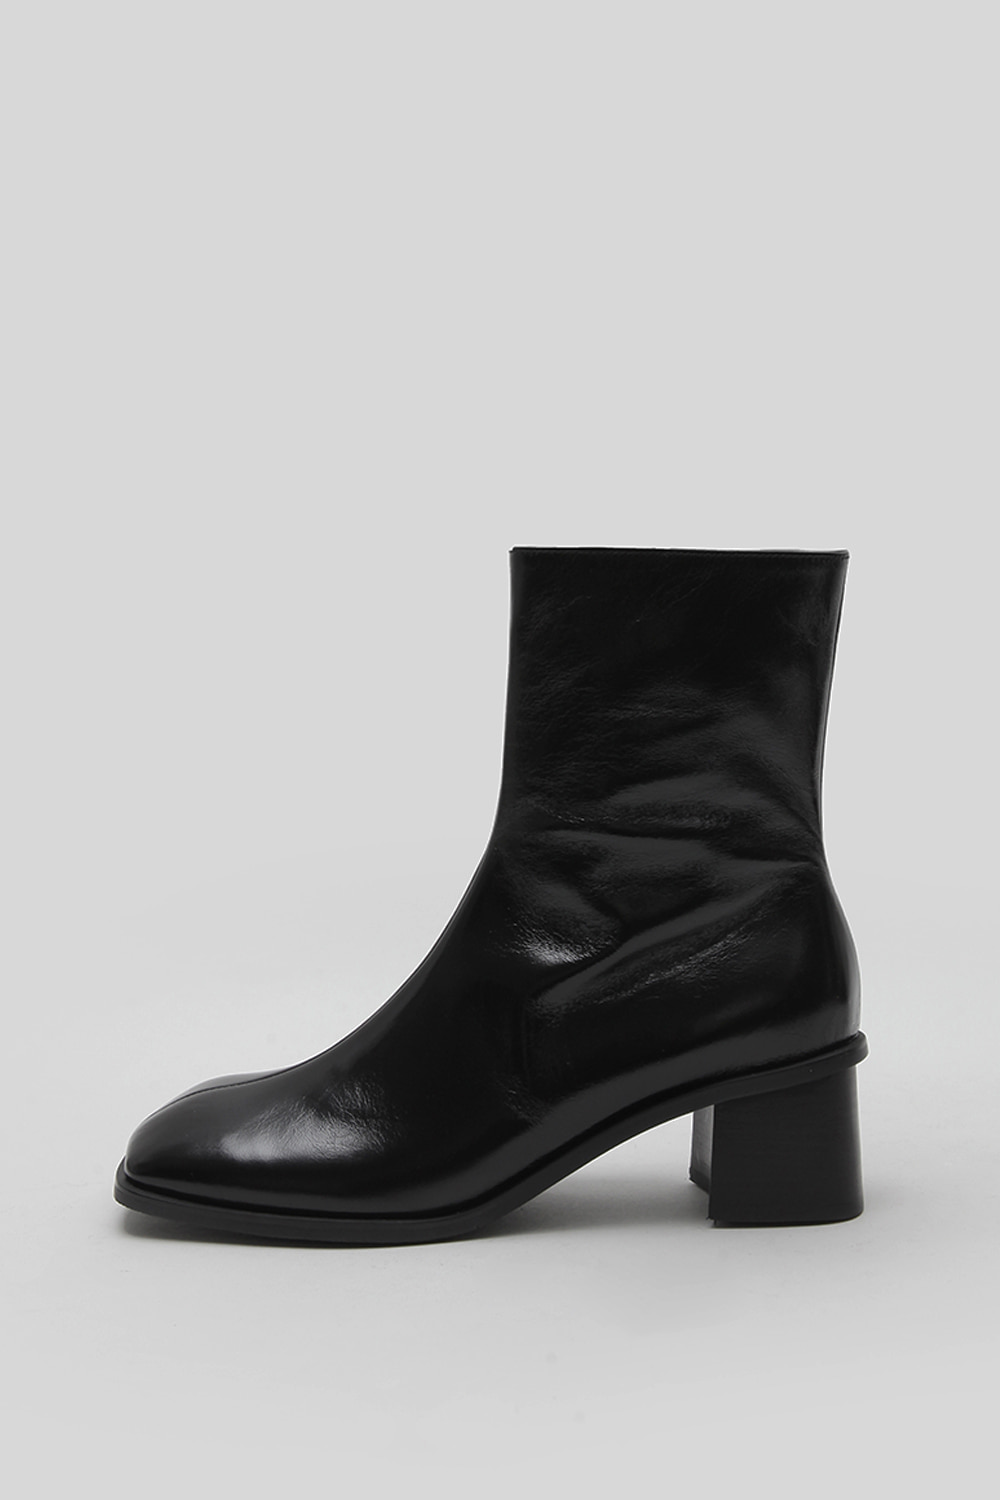 WRINKLY SQUARE BOOTS [C1F02 BK]